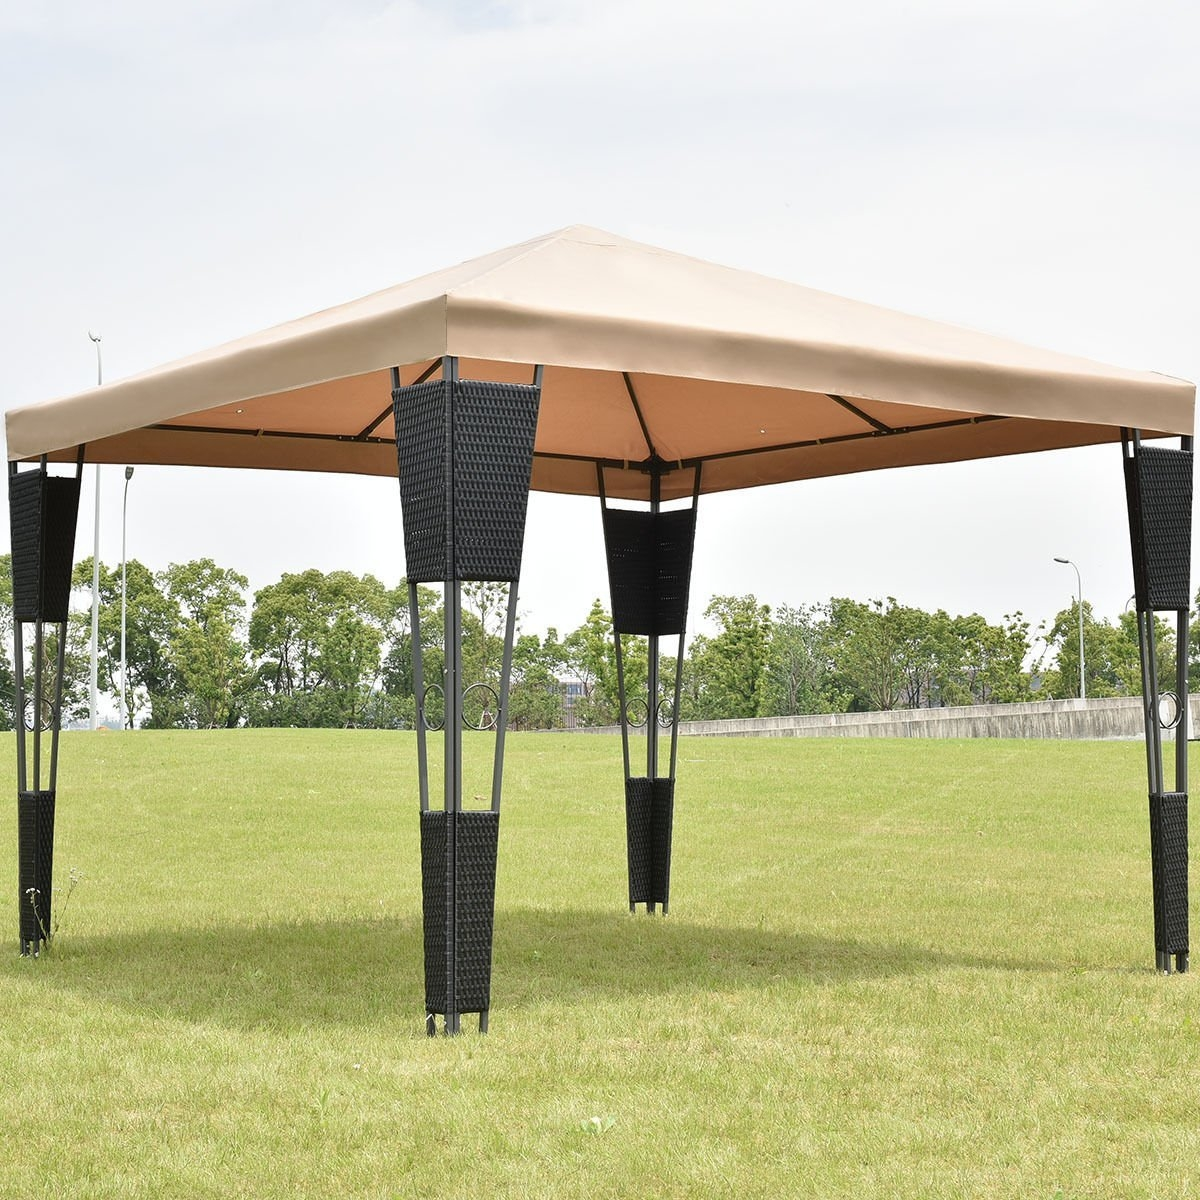 New MTN-G MTN-G Outdoor 10'x10' Rattan Wicker Gazebo Canopy Tent Shelter Awning W Brown Cover by MTN Gearsmith